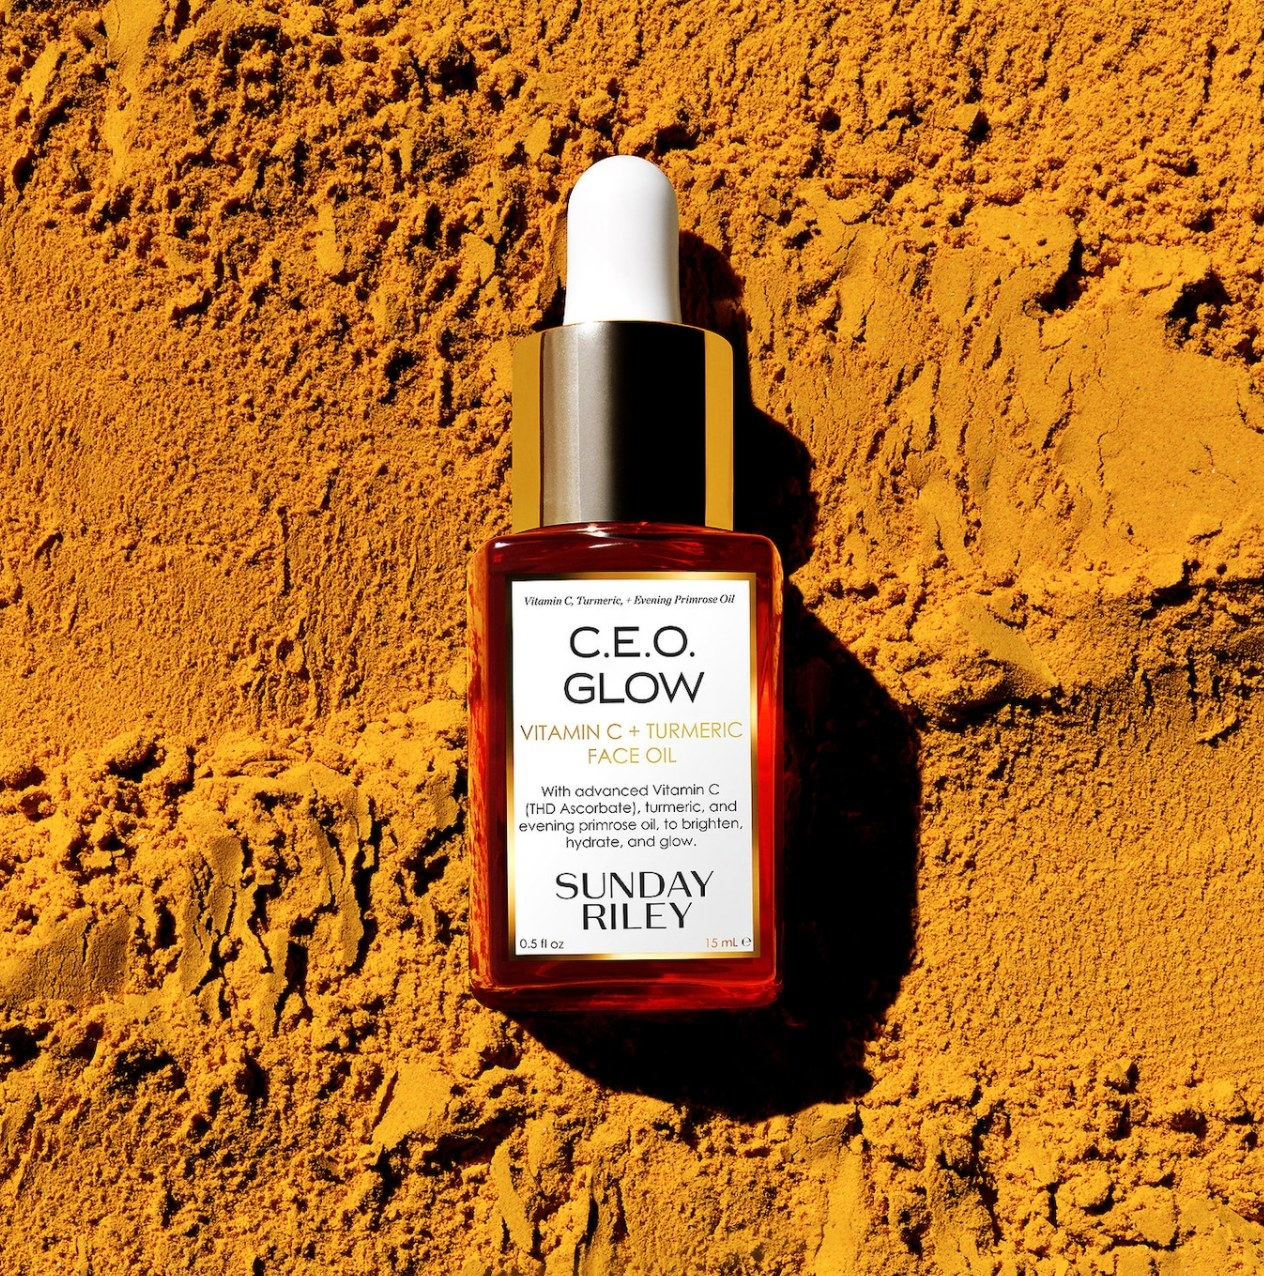 Bottle of Sunday Riley CEO Glow against turmeric powder background